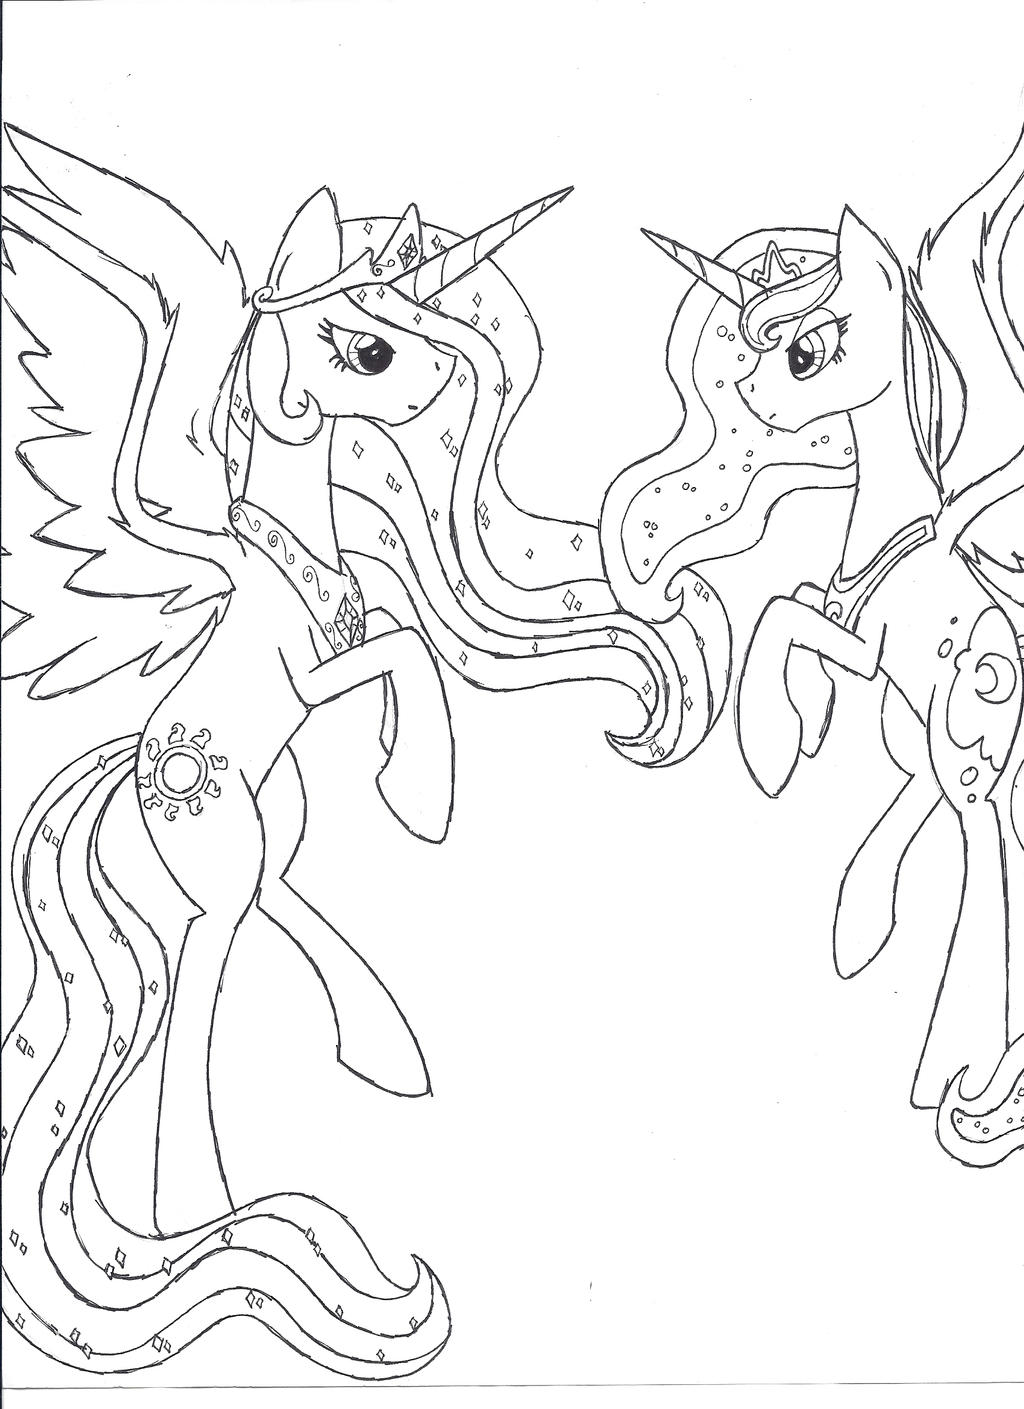 Princess celestia and princess luna unfinished by iwatobi for Princess luna coloring pages